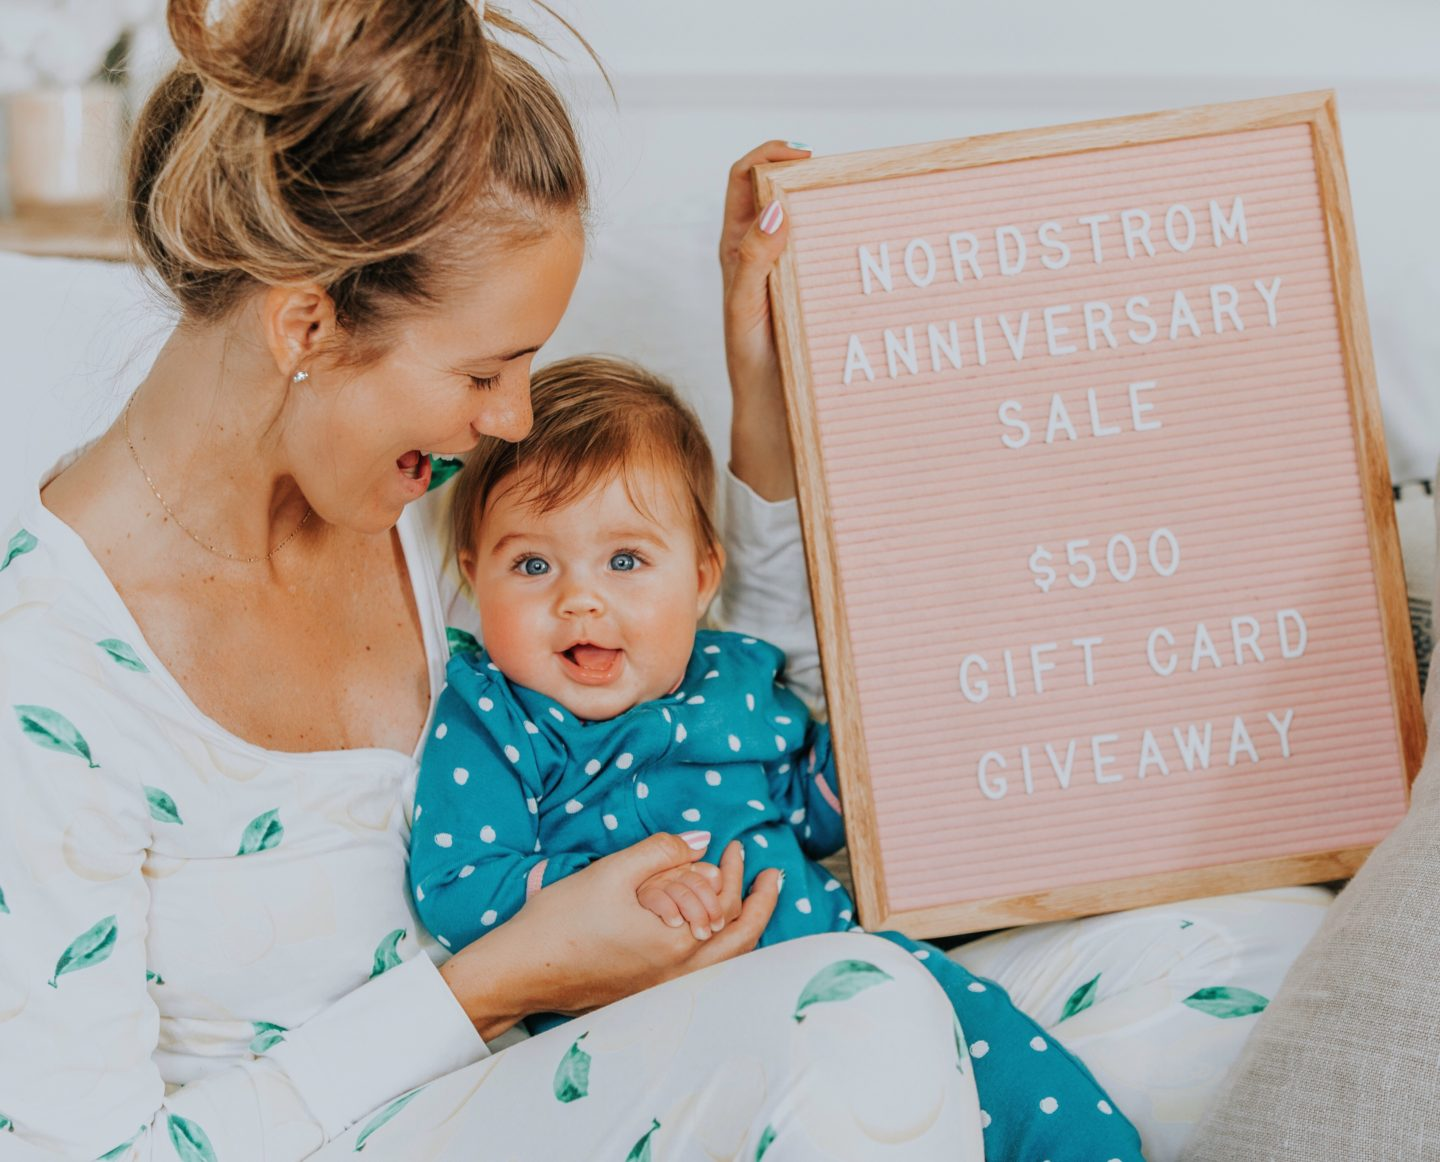 The Nordstrom Anniversary Sale Guide!